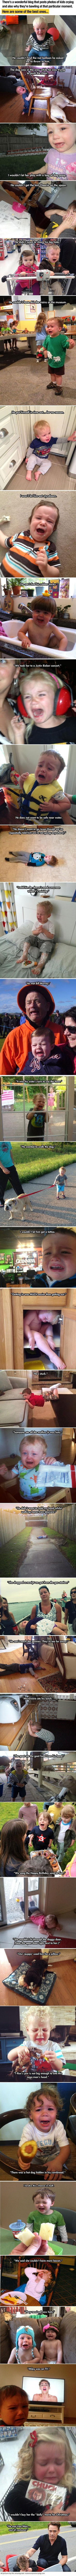 This is seriously great!  It gives reasons for why these kids are crying and most of them are pretty darn funny!